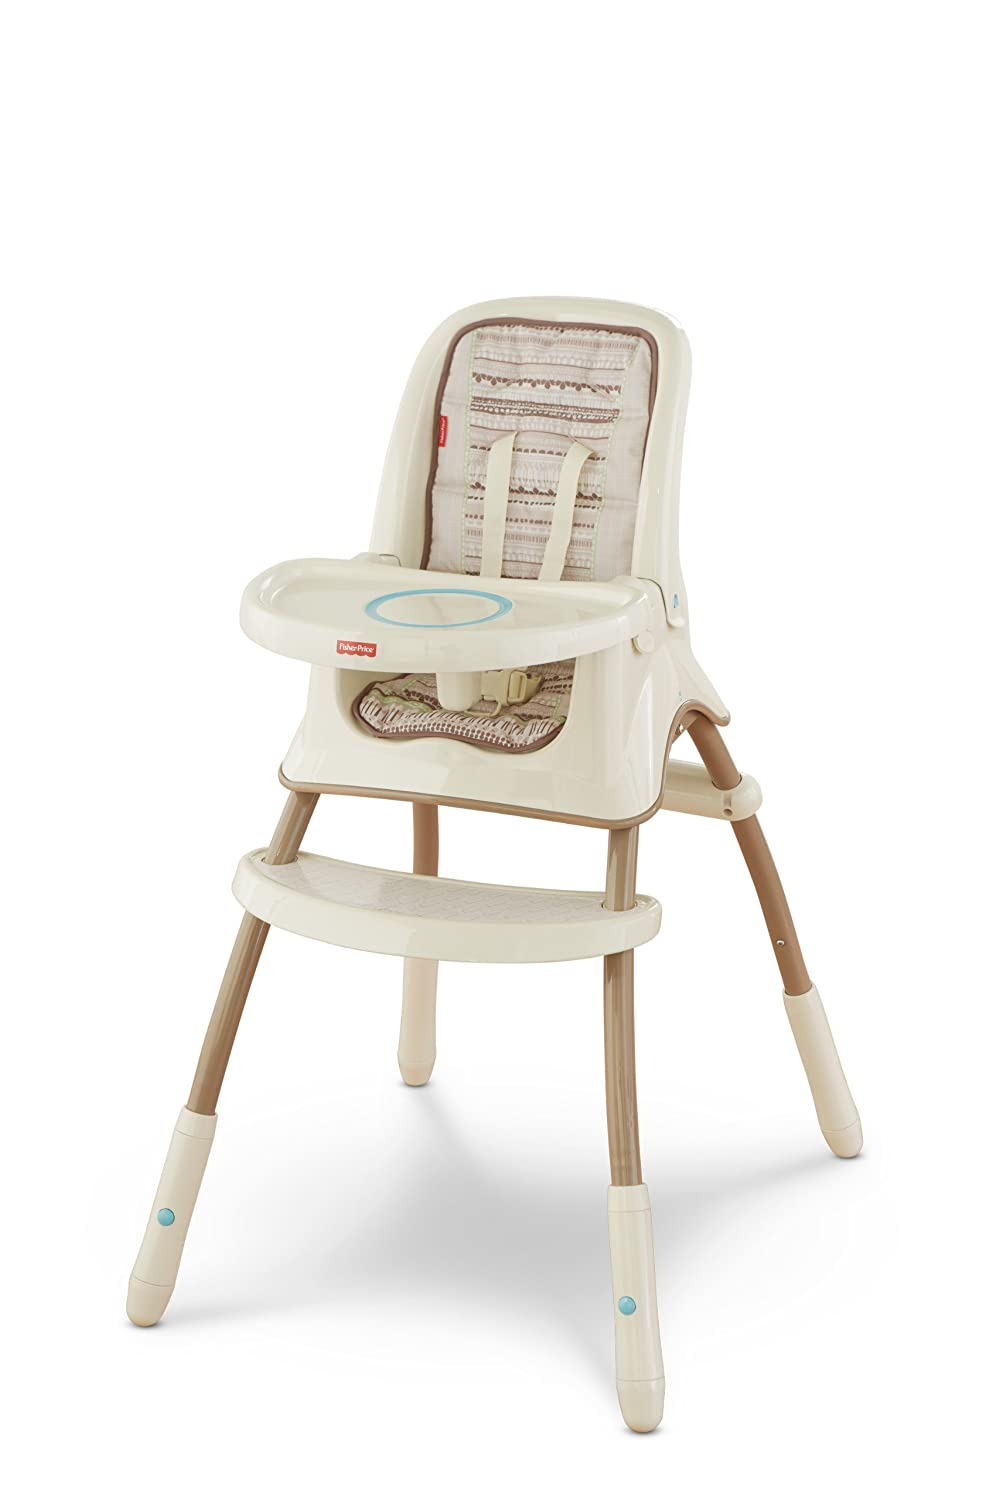 Fisher-Price Grow with Me High Chair, Bunny Mattel Y7875